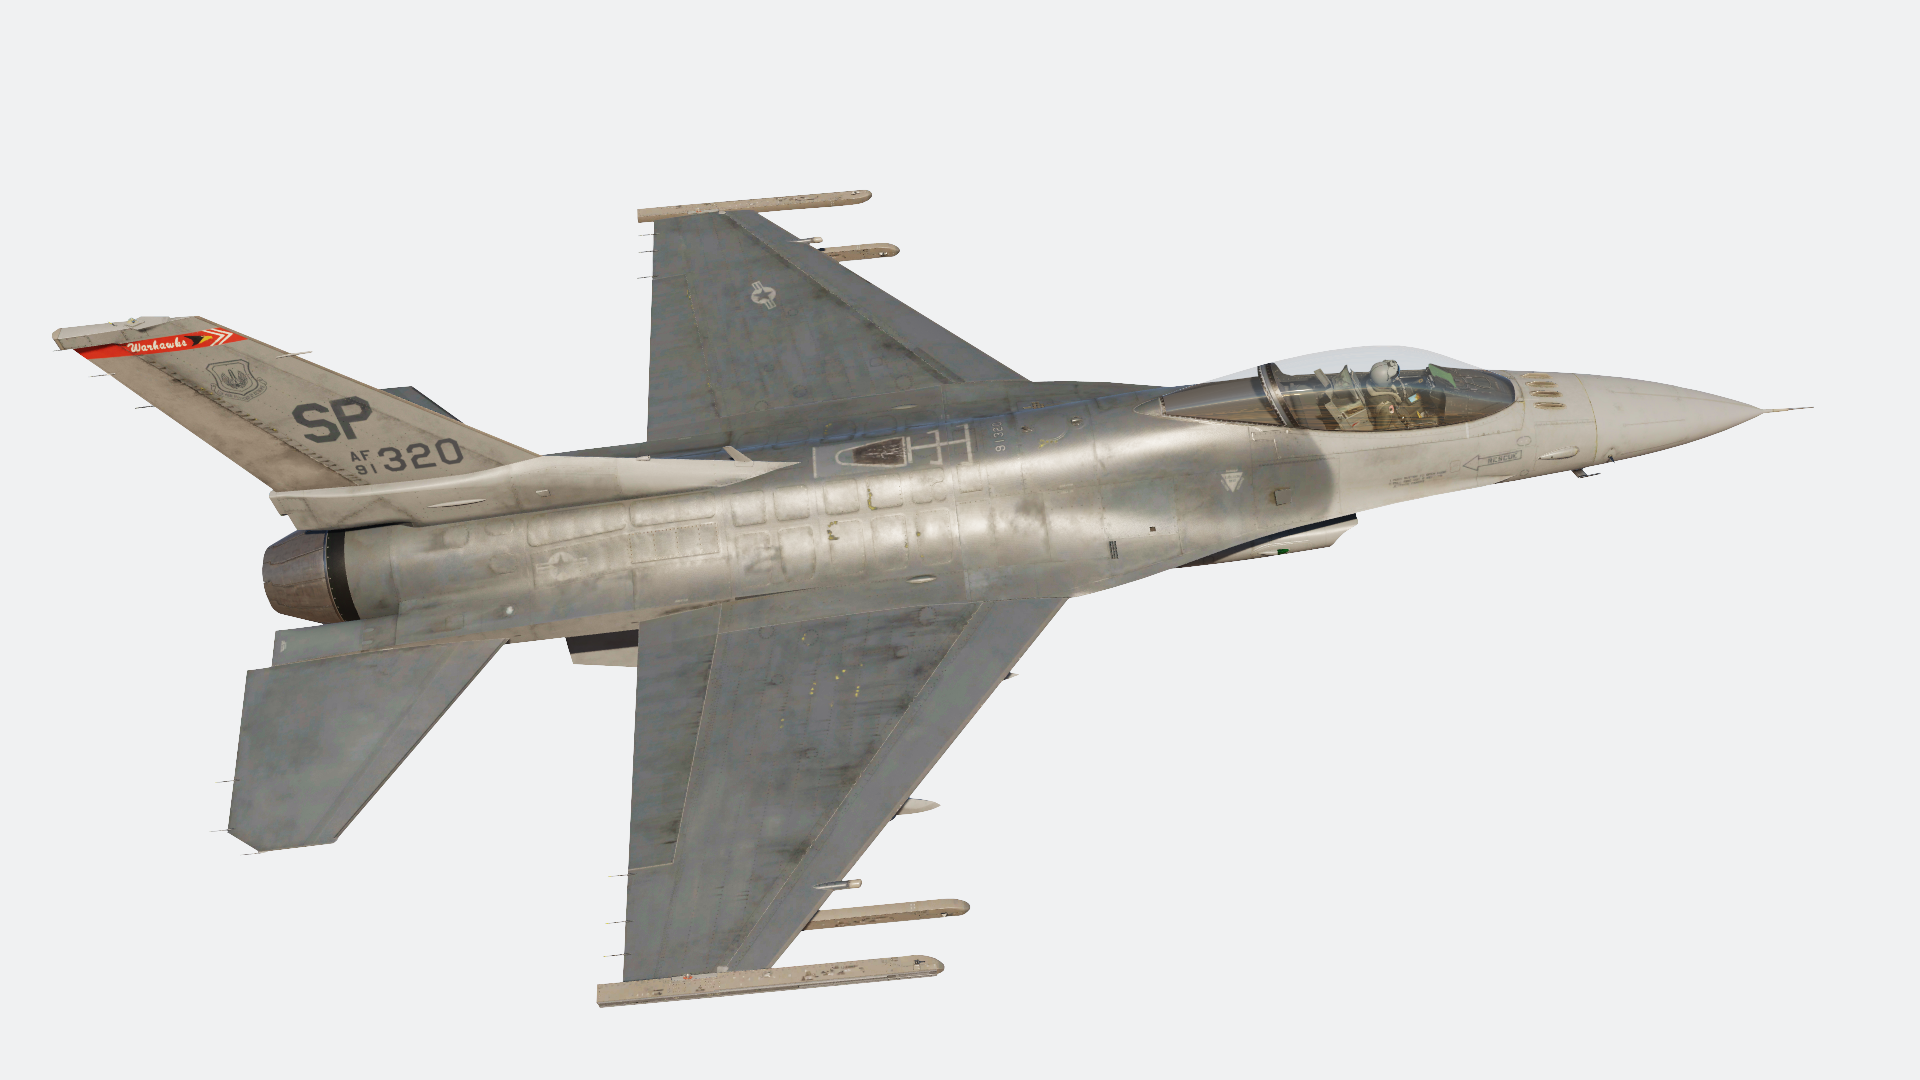 F-16C 480th Fighter Squadron Spangdahlem Weathered